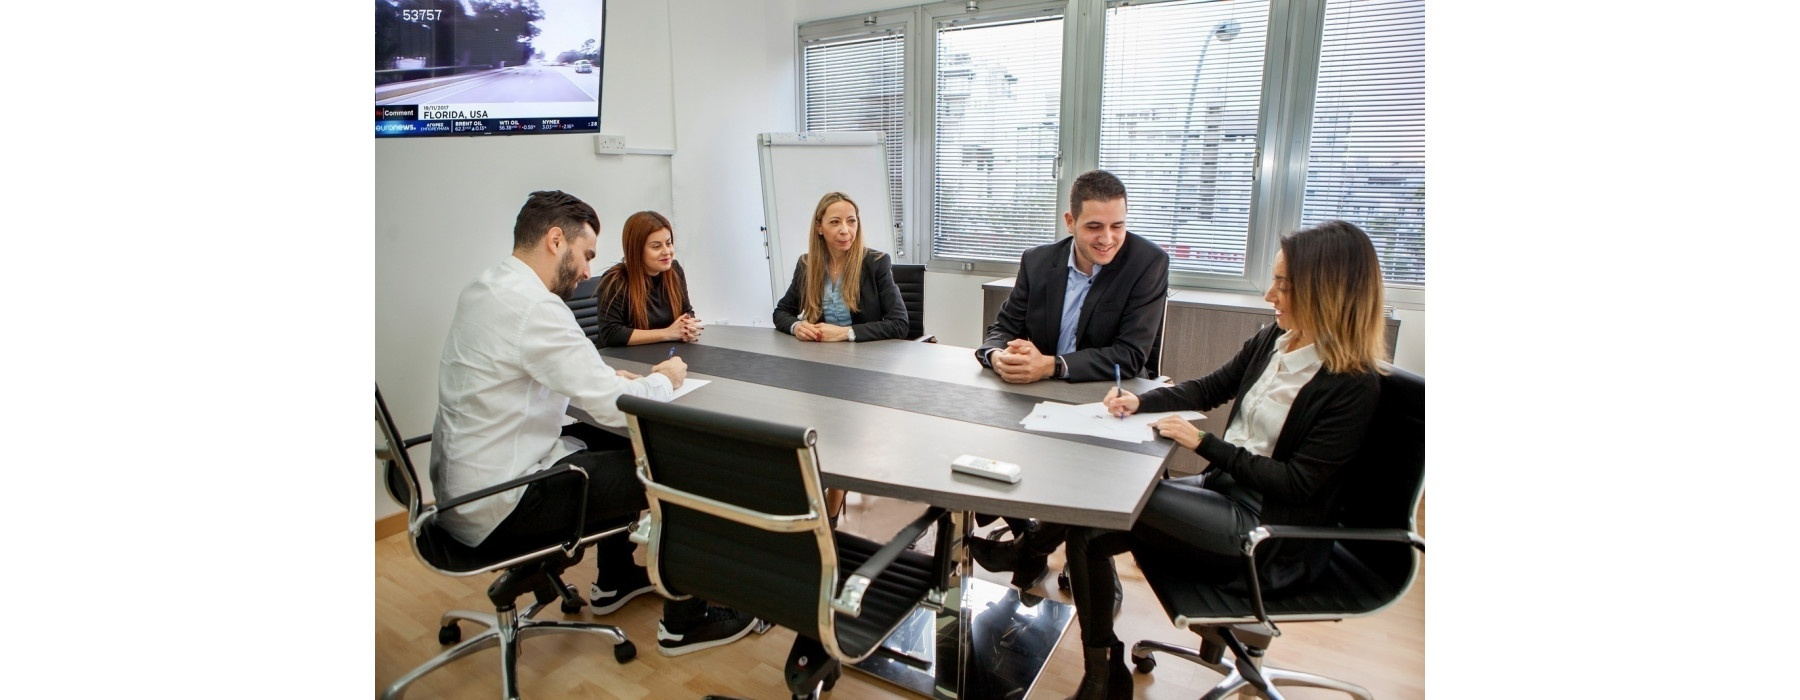 Nicosia - Business District  - Video conferencing